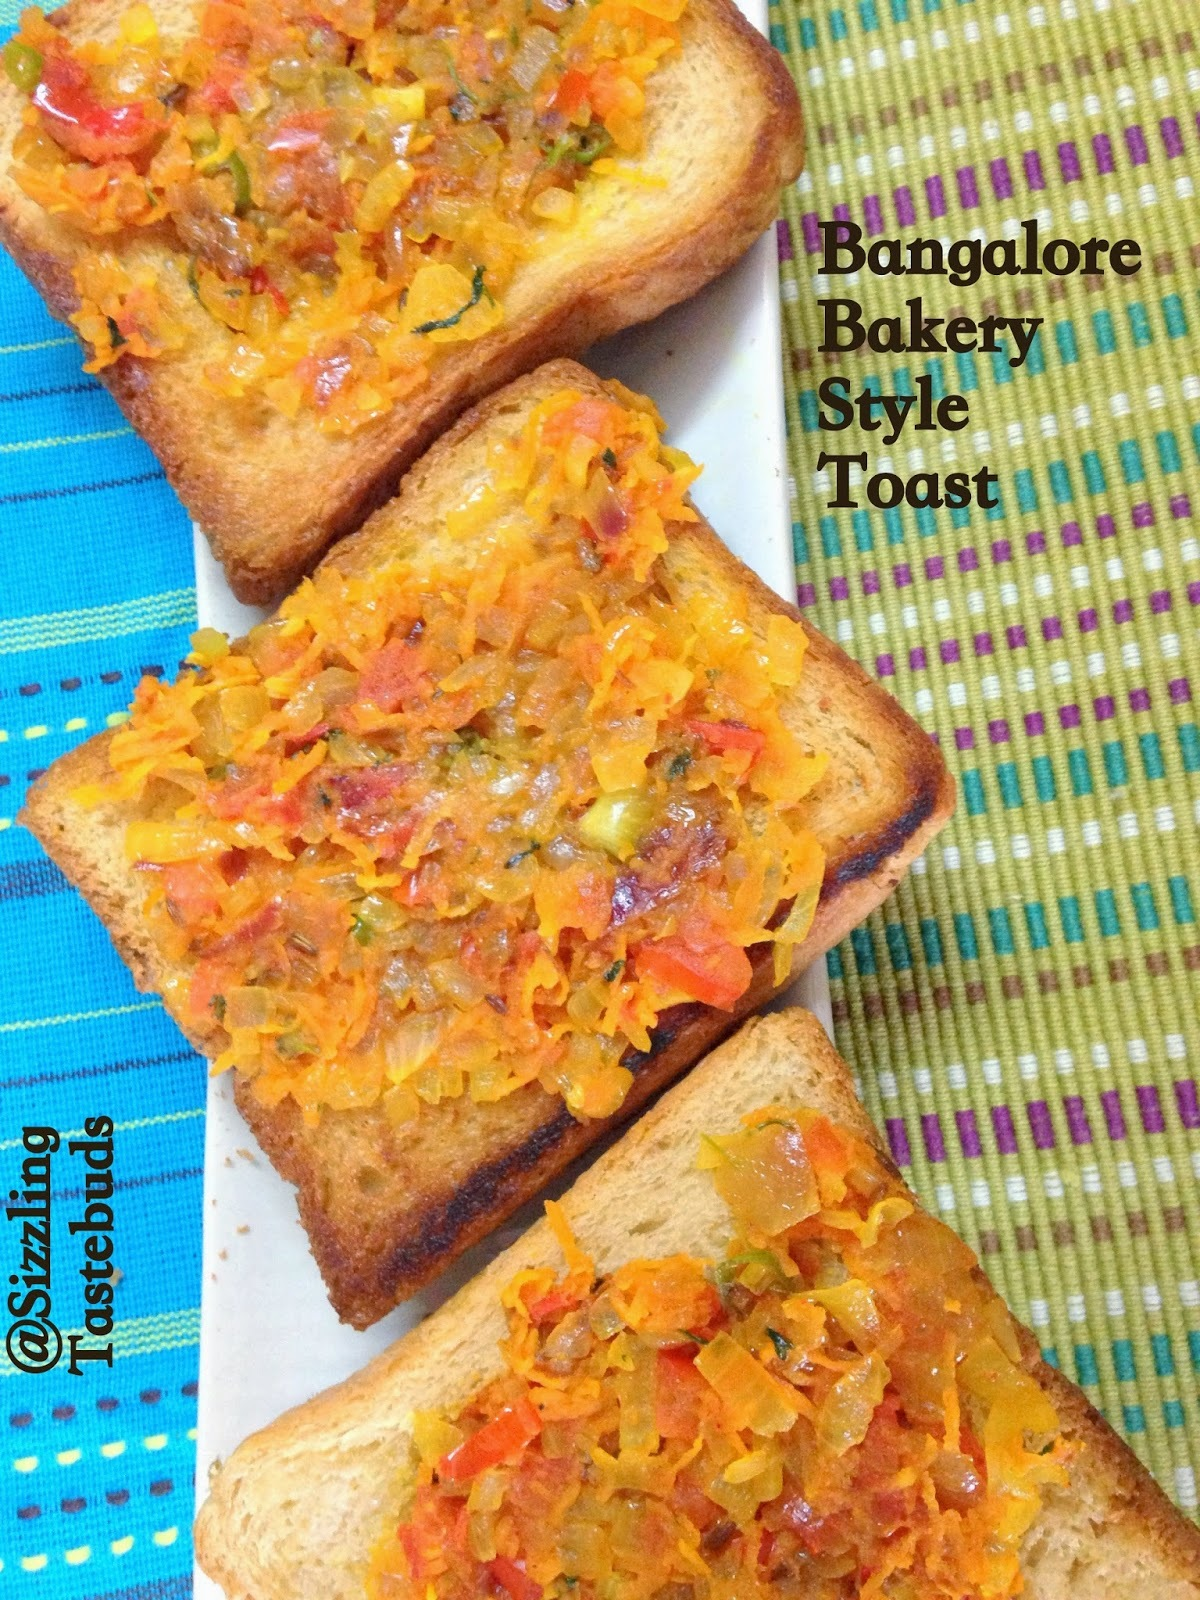 Bangalore Bakery Style Masala Toast | Evening Snack varieties